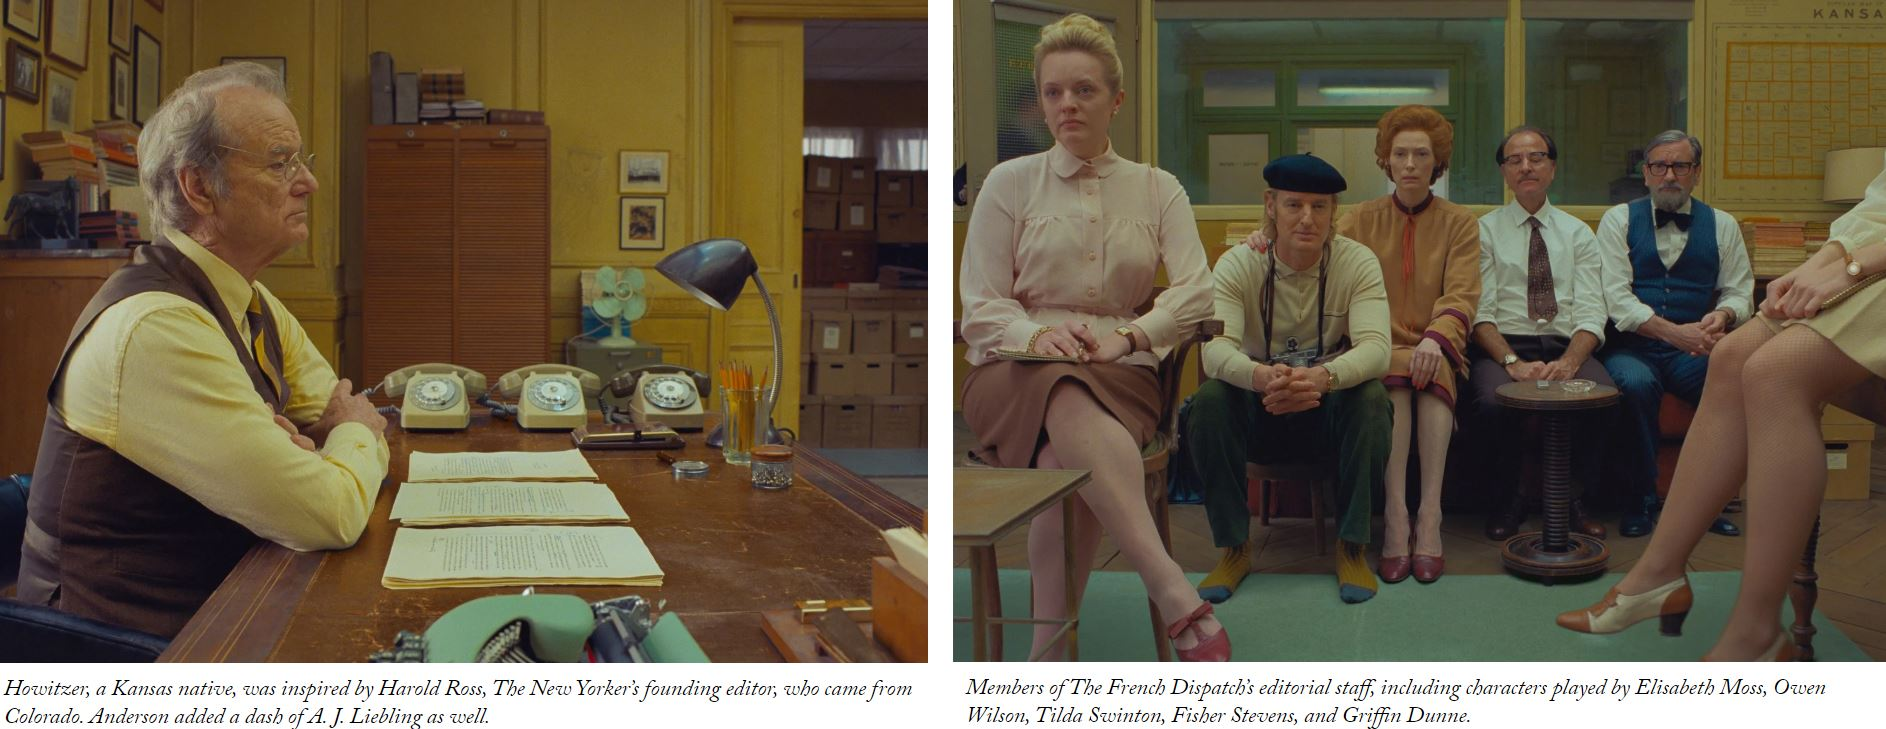 The French Dispatch of the Liberty, Kansas Evening Sun Movie Scenes From the New Yorker February 11 2020